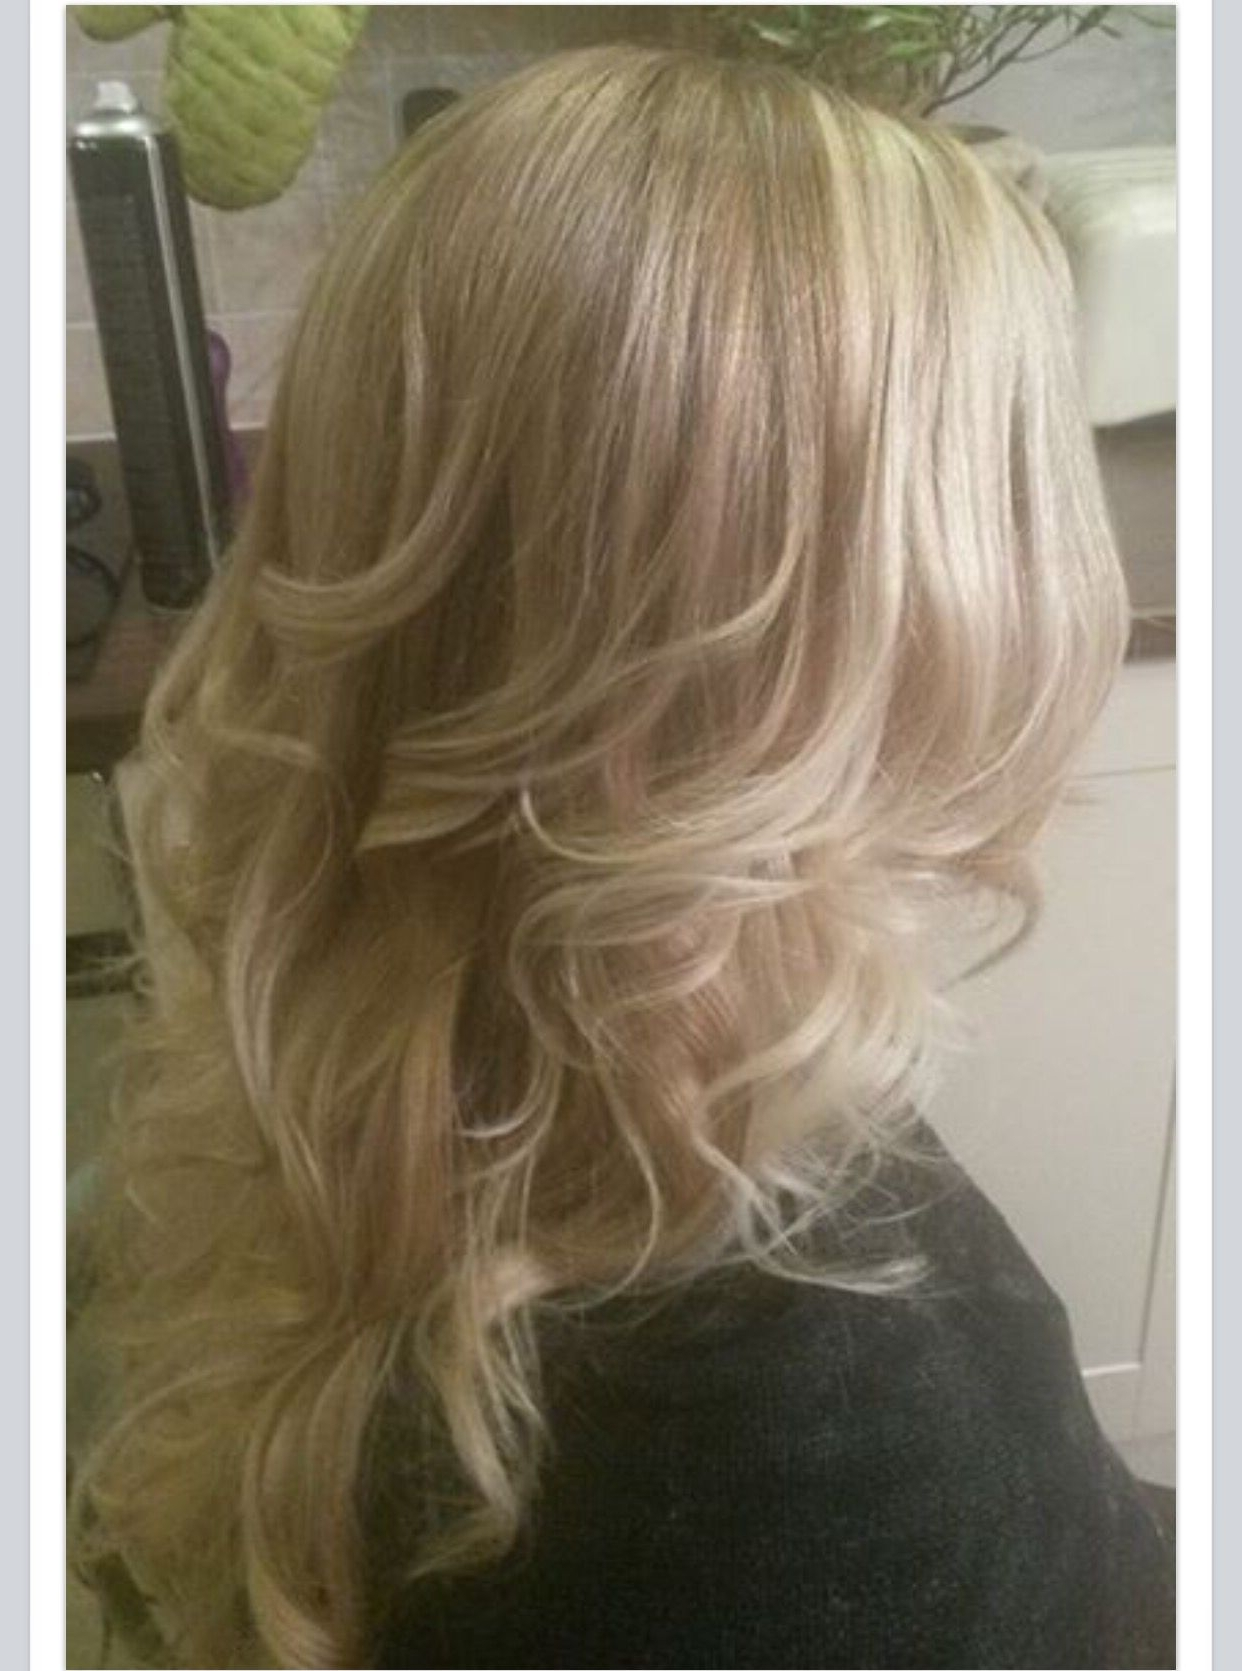 Widely Used Fade To White Blonde Hairstyles For Caramel Ash Brown And White Blonde Subtle Fade Ombré (View 5 of 20)